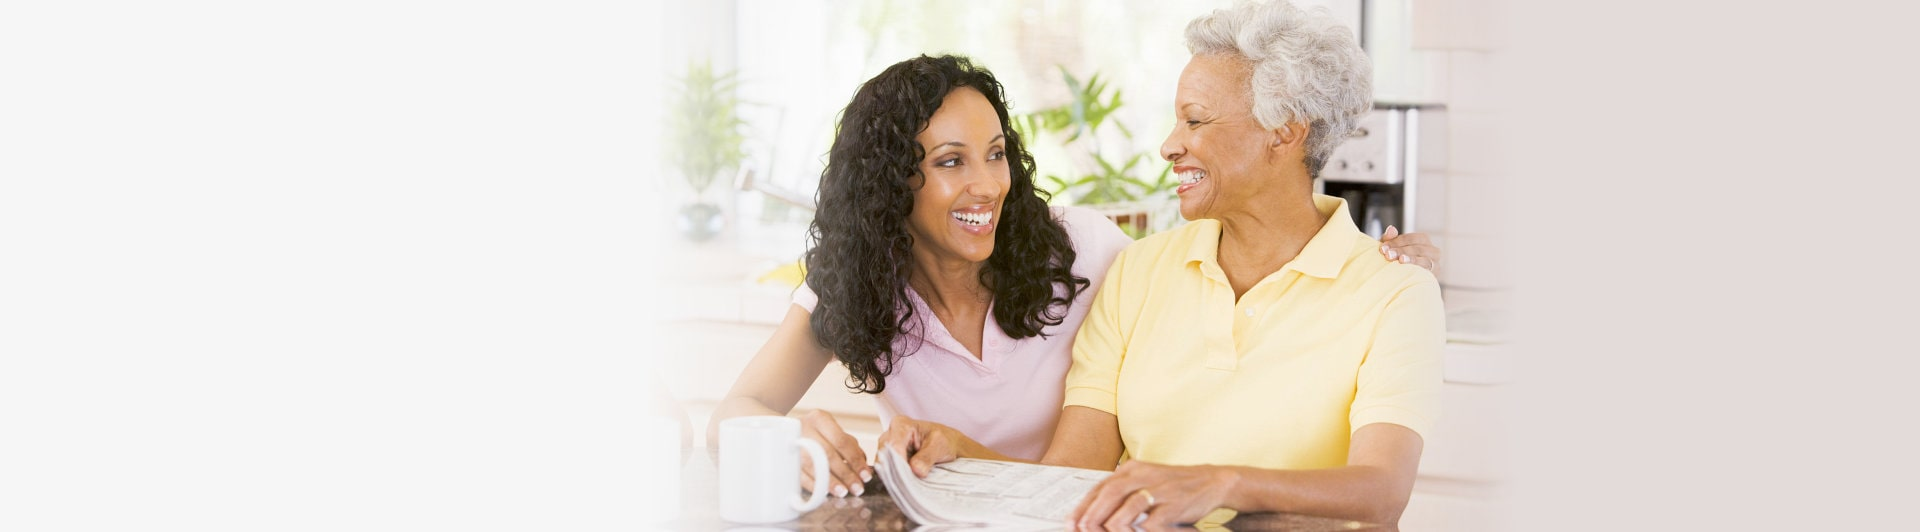 caregiver and elderwoman facing each other smiling